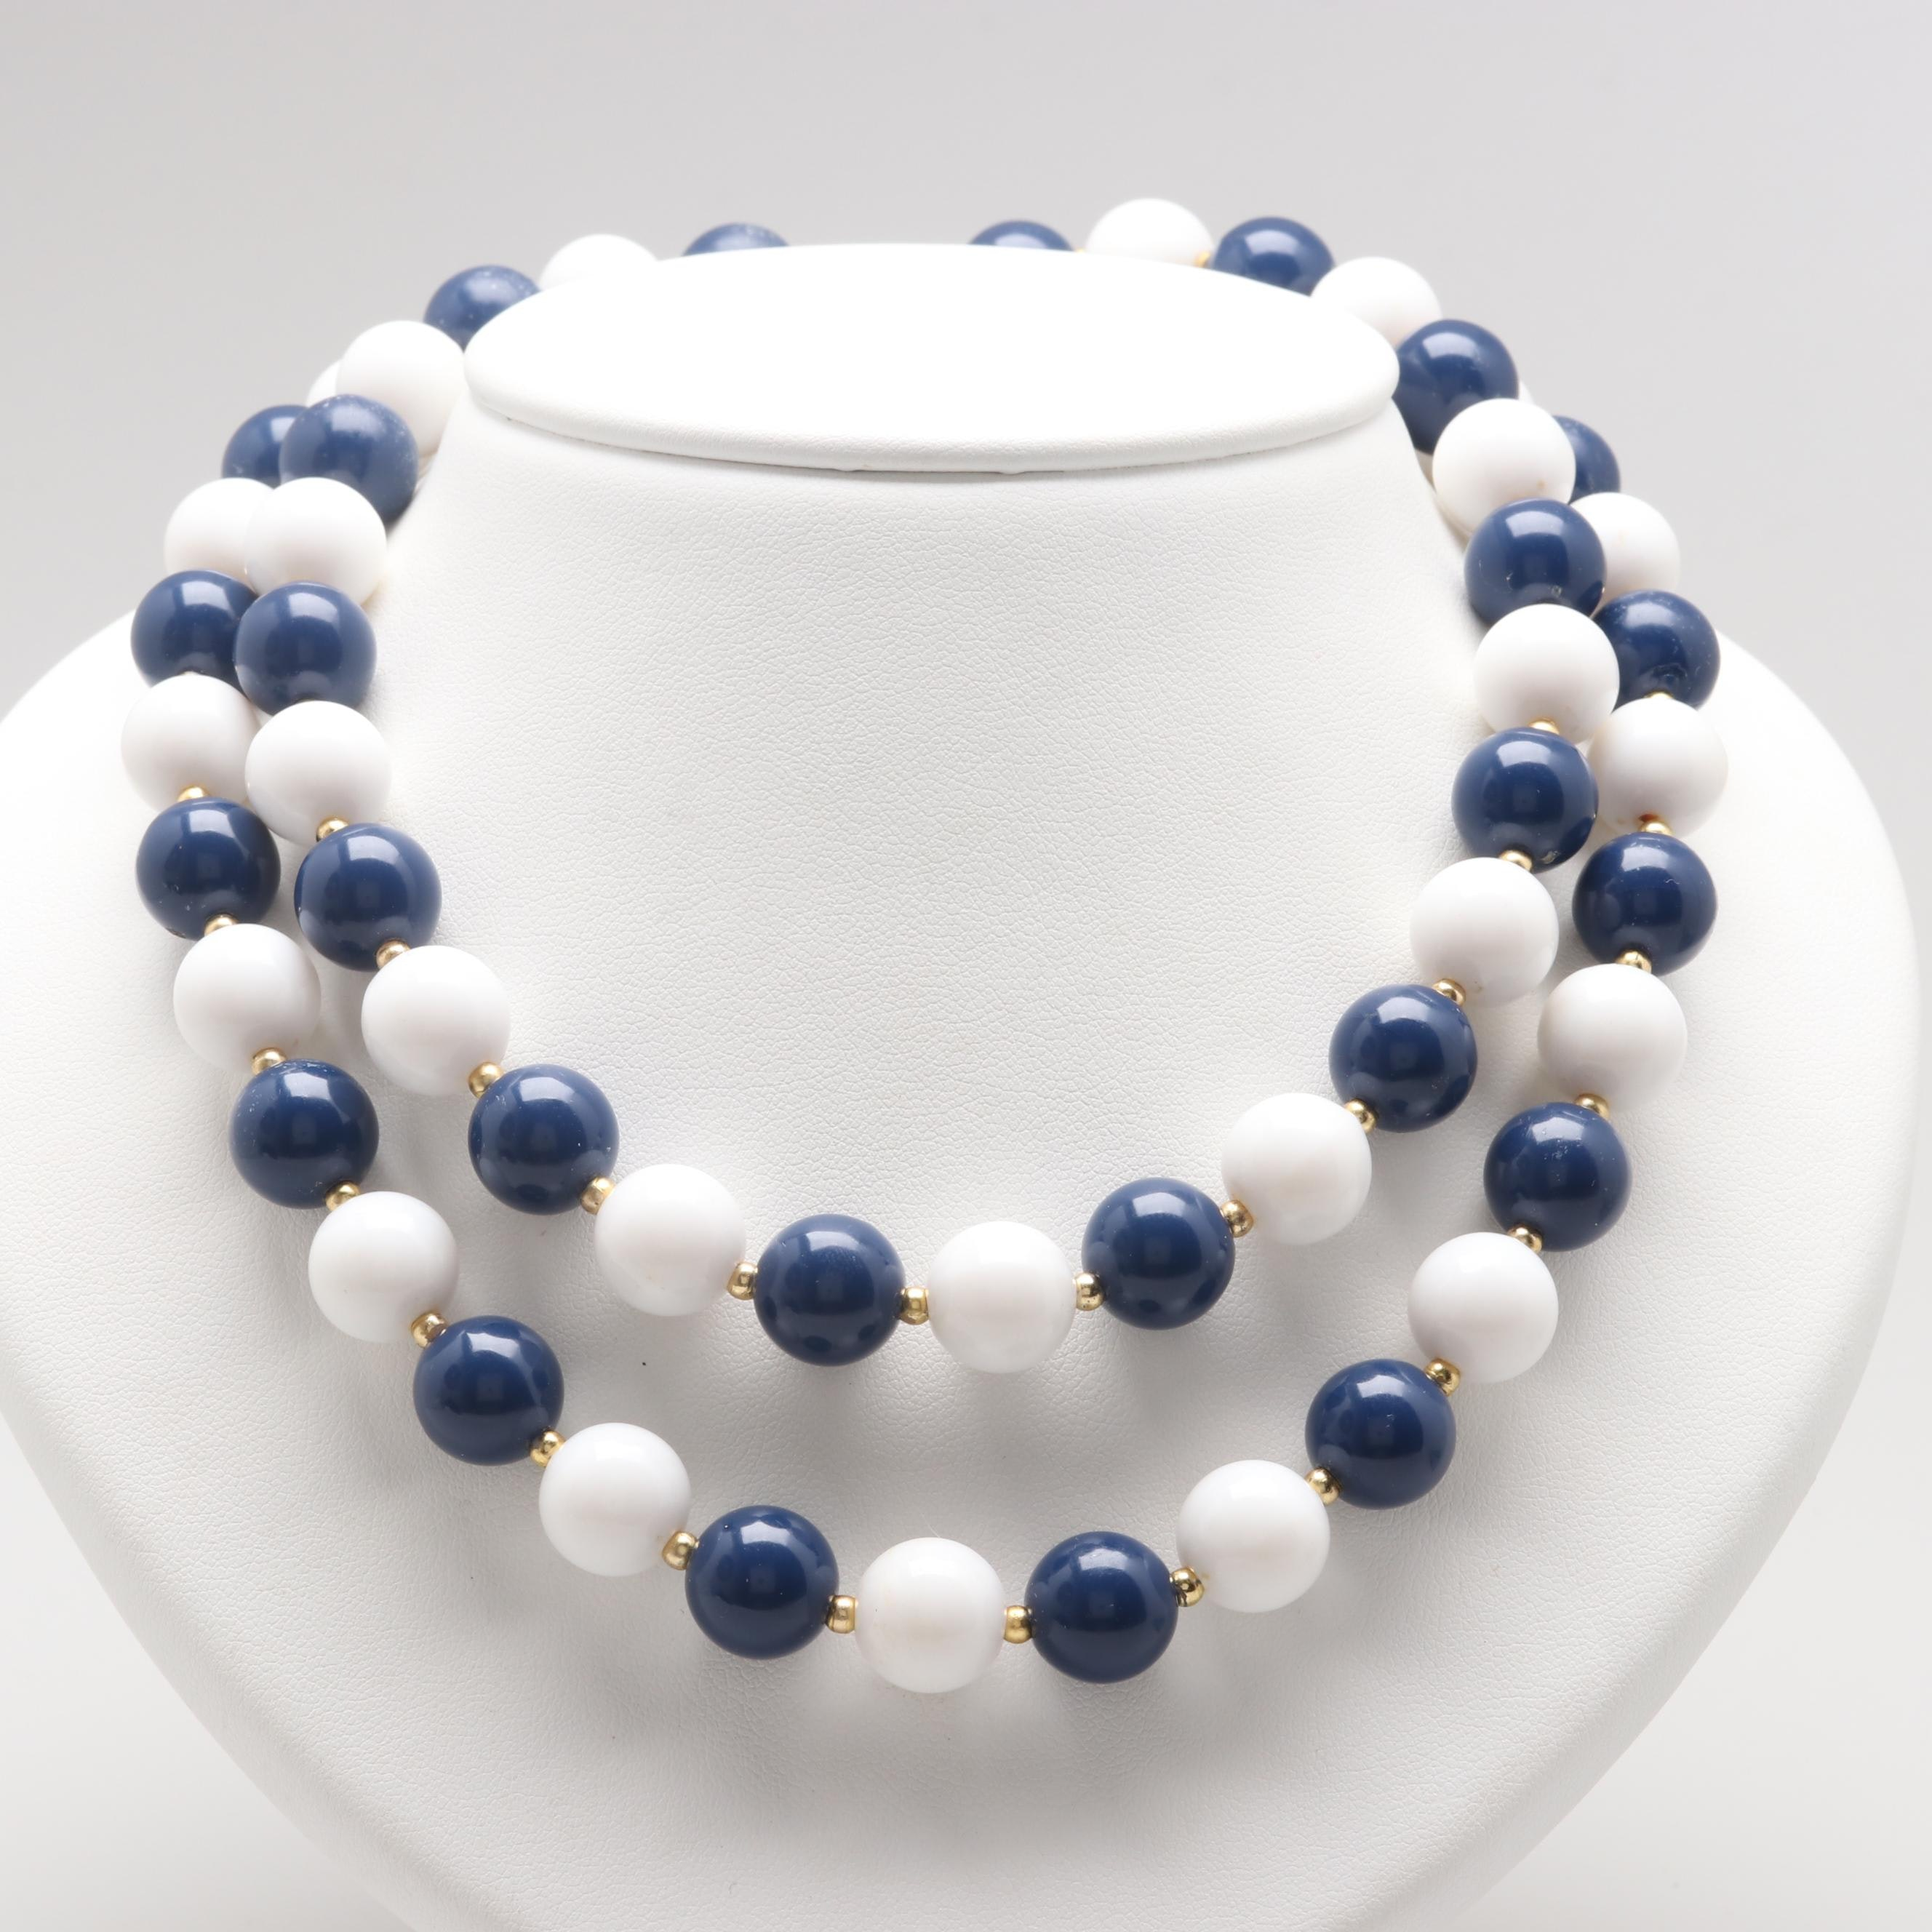 White and Blue Plastic Beaded Necklace with Gold Tone Findings